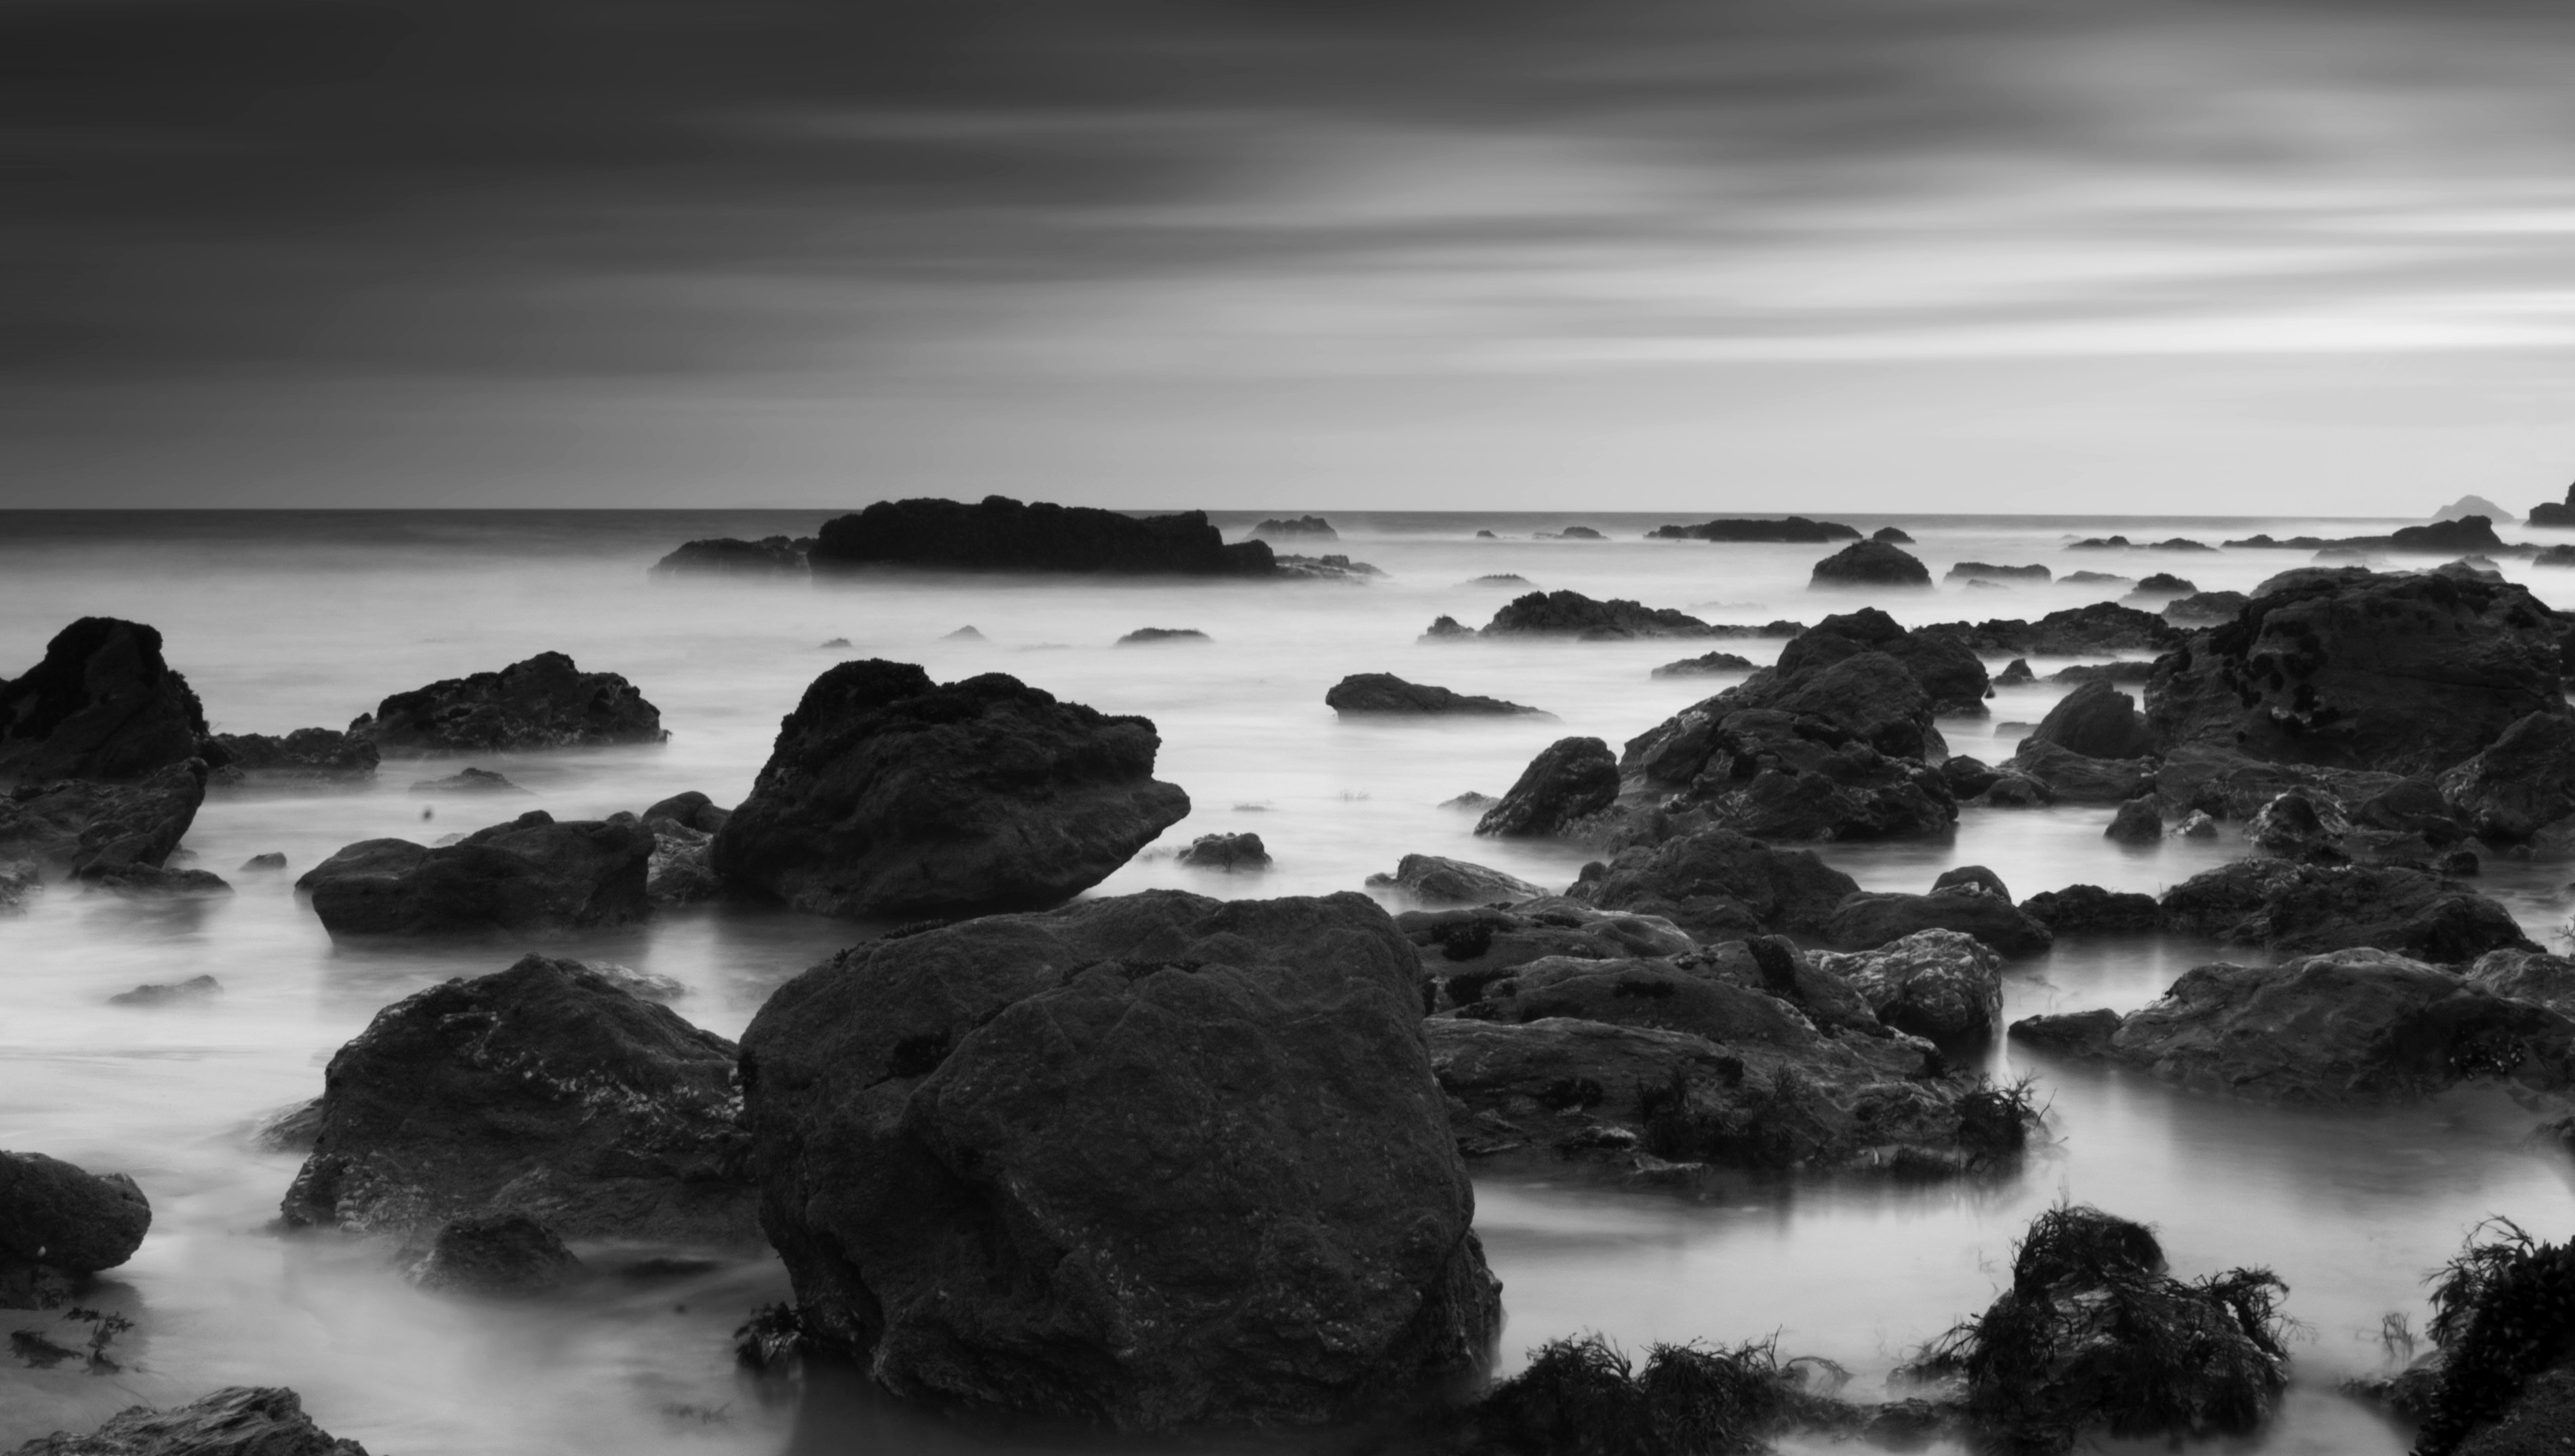 black and while shoreline with rocks